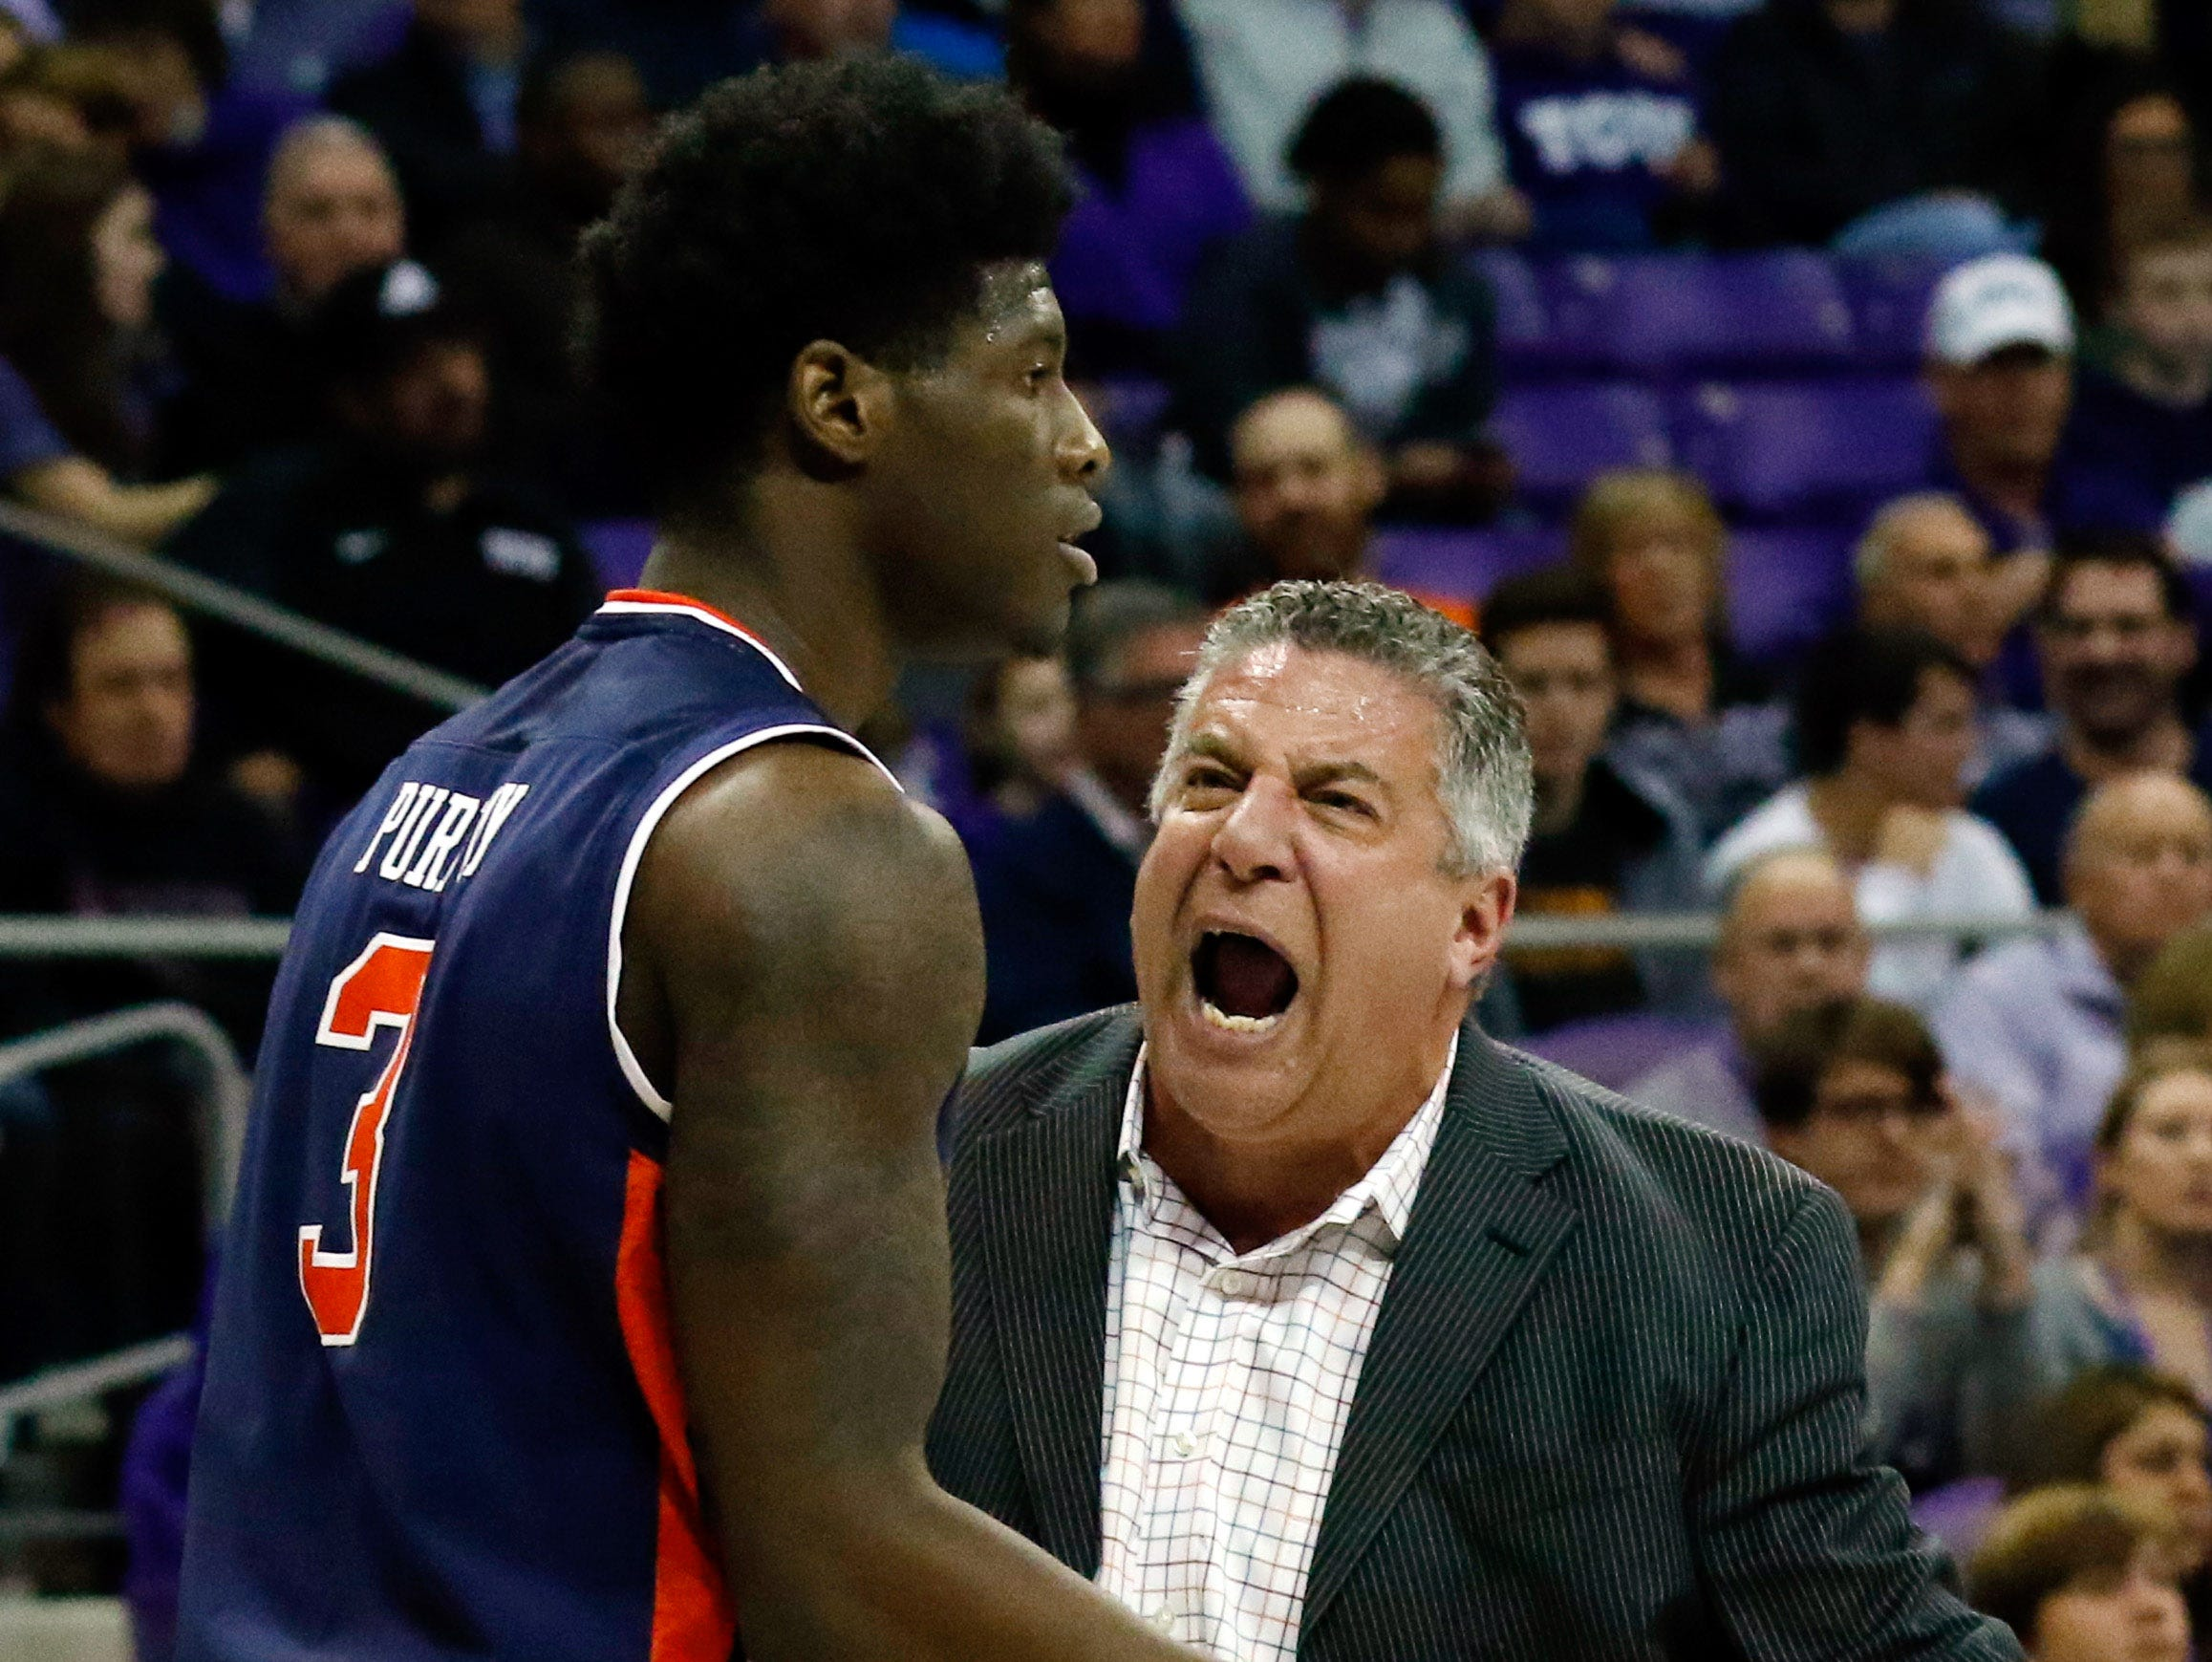 Jan 28, 2017; Fort Worth, TX, USA; Auburn Tigers head coach Bruce Pearl reacts on the sidelines to forward Danjel Purifoy (3) during a game against the TCU Horned Frogs at Ed and Rae Schollmaier Arena. Auburn won 88-80. Mandatory Credit: Ray Carlin-USA TODAY Sports